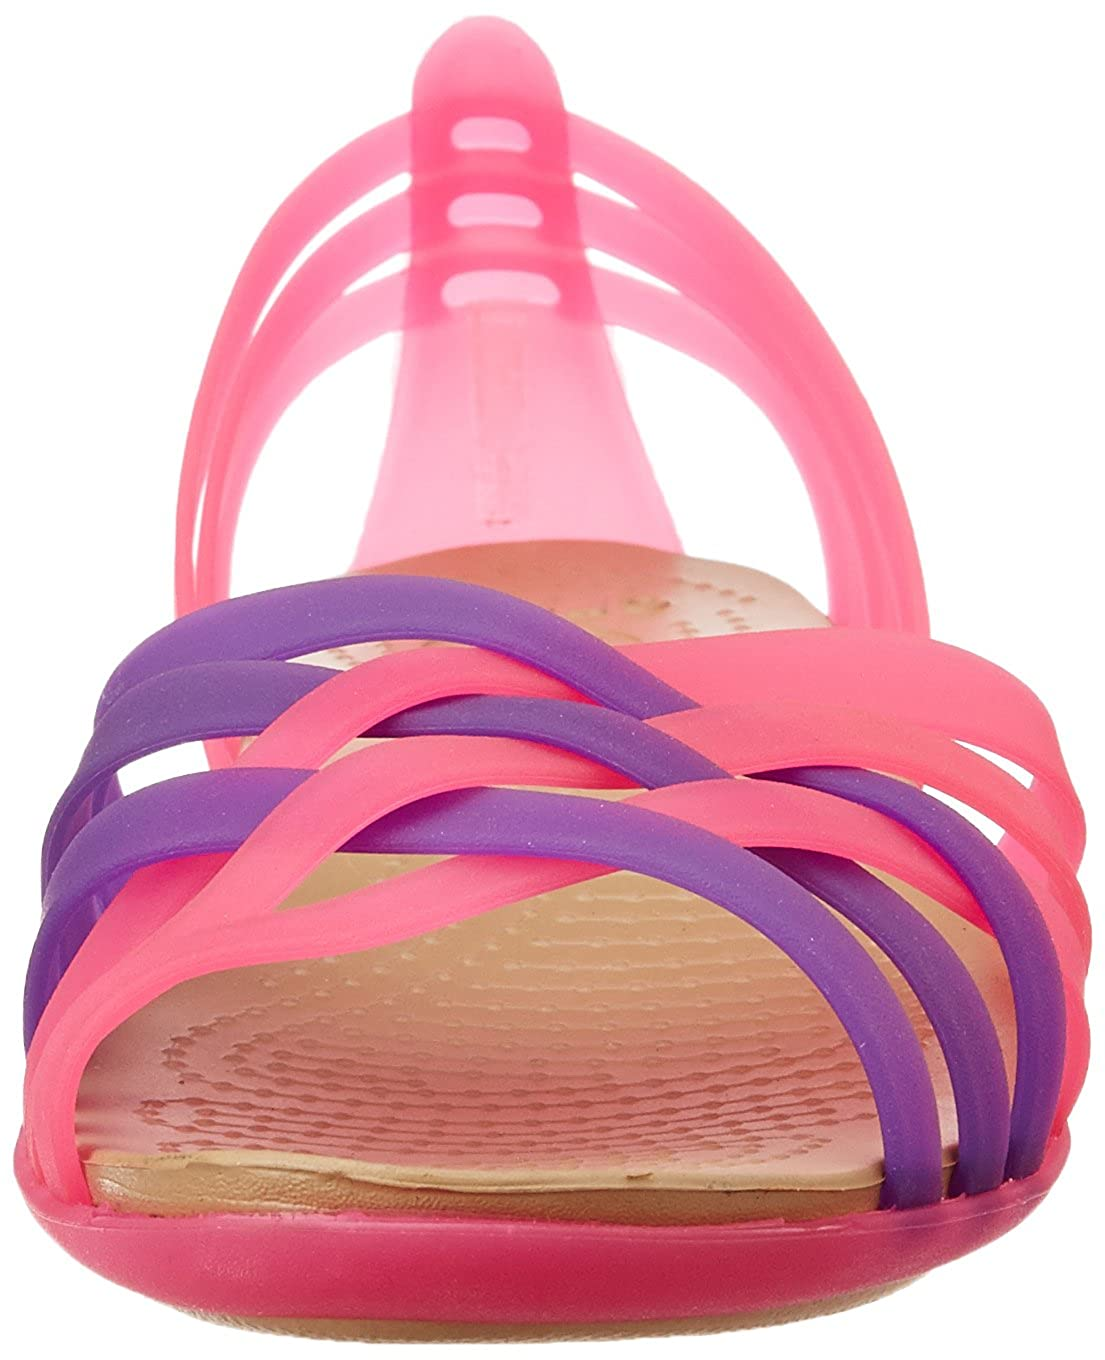 46297f63df50 crocs Women s Huarache Flat Vibrant Pink and Neon Purple Rubber Ballet Flats  - W11  Buy Online at Low Prices in India - Amazon.in